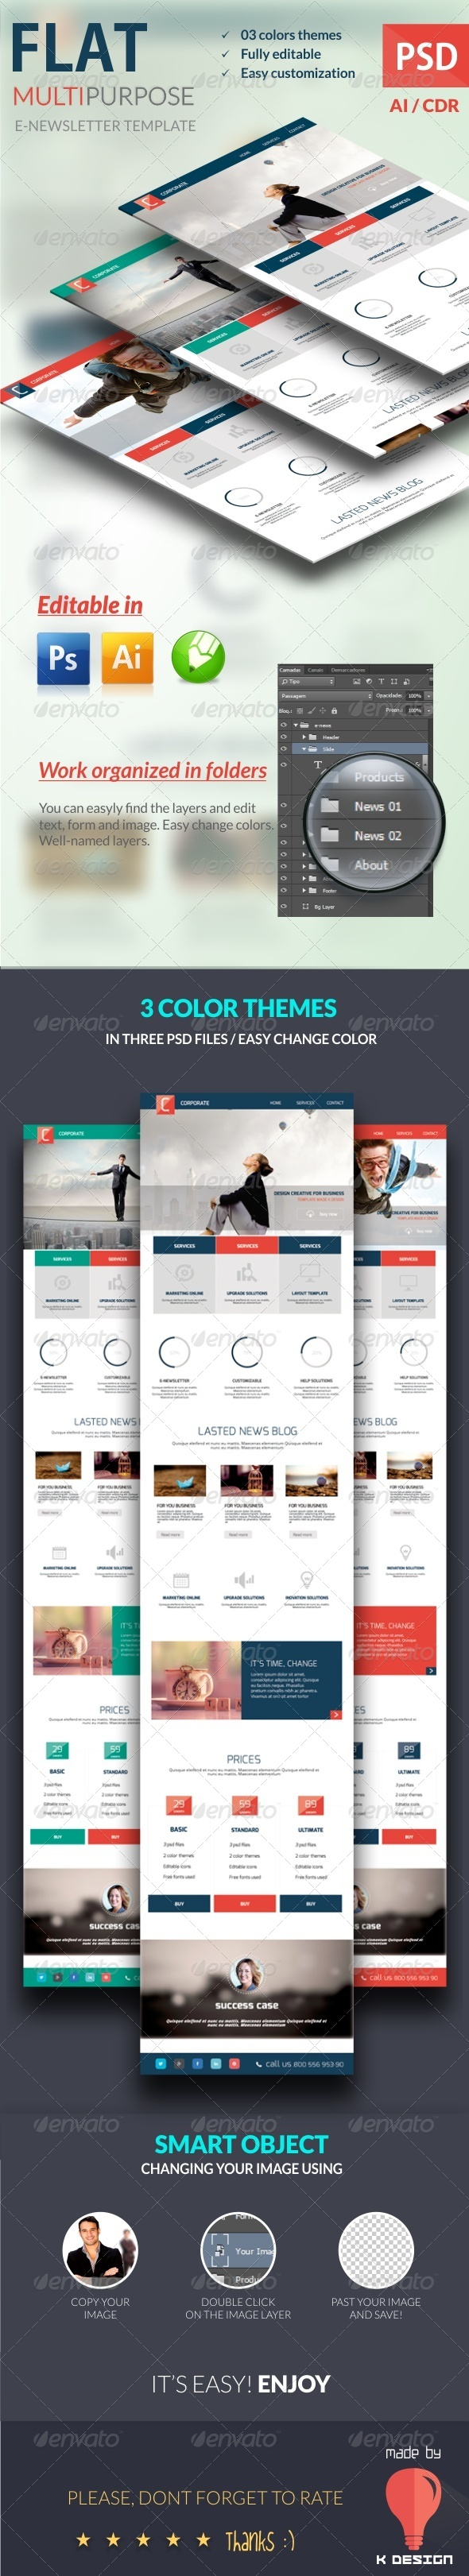 GraphicRiver Flat Multipurpose E-newsletter Template 8406062